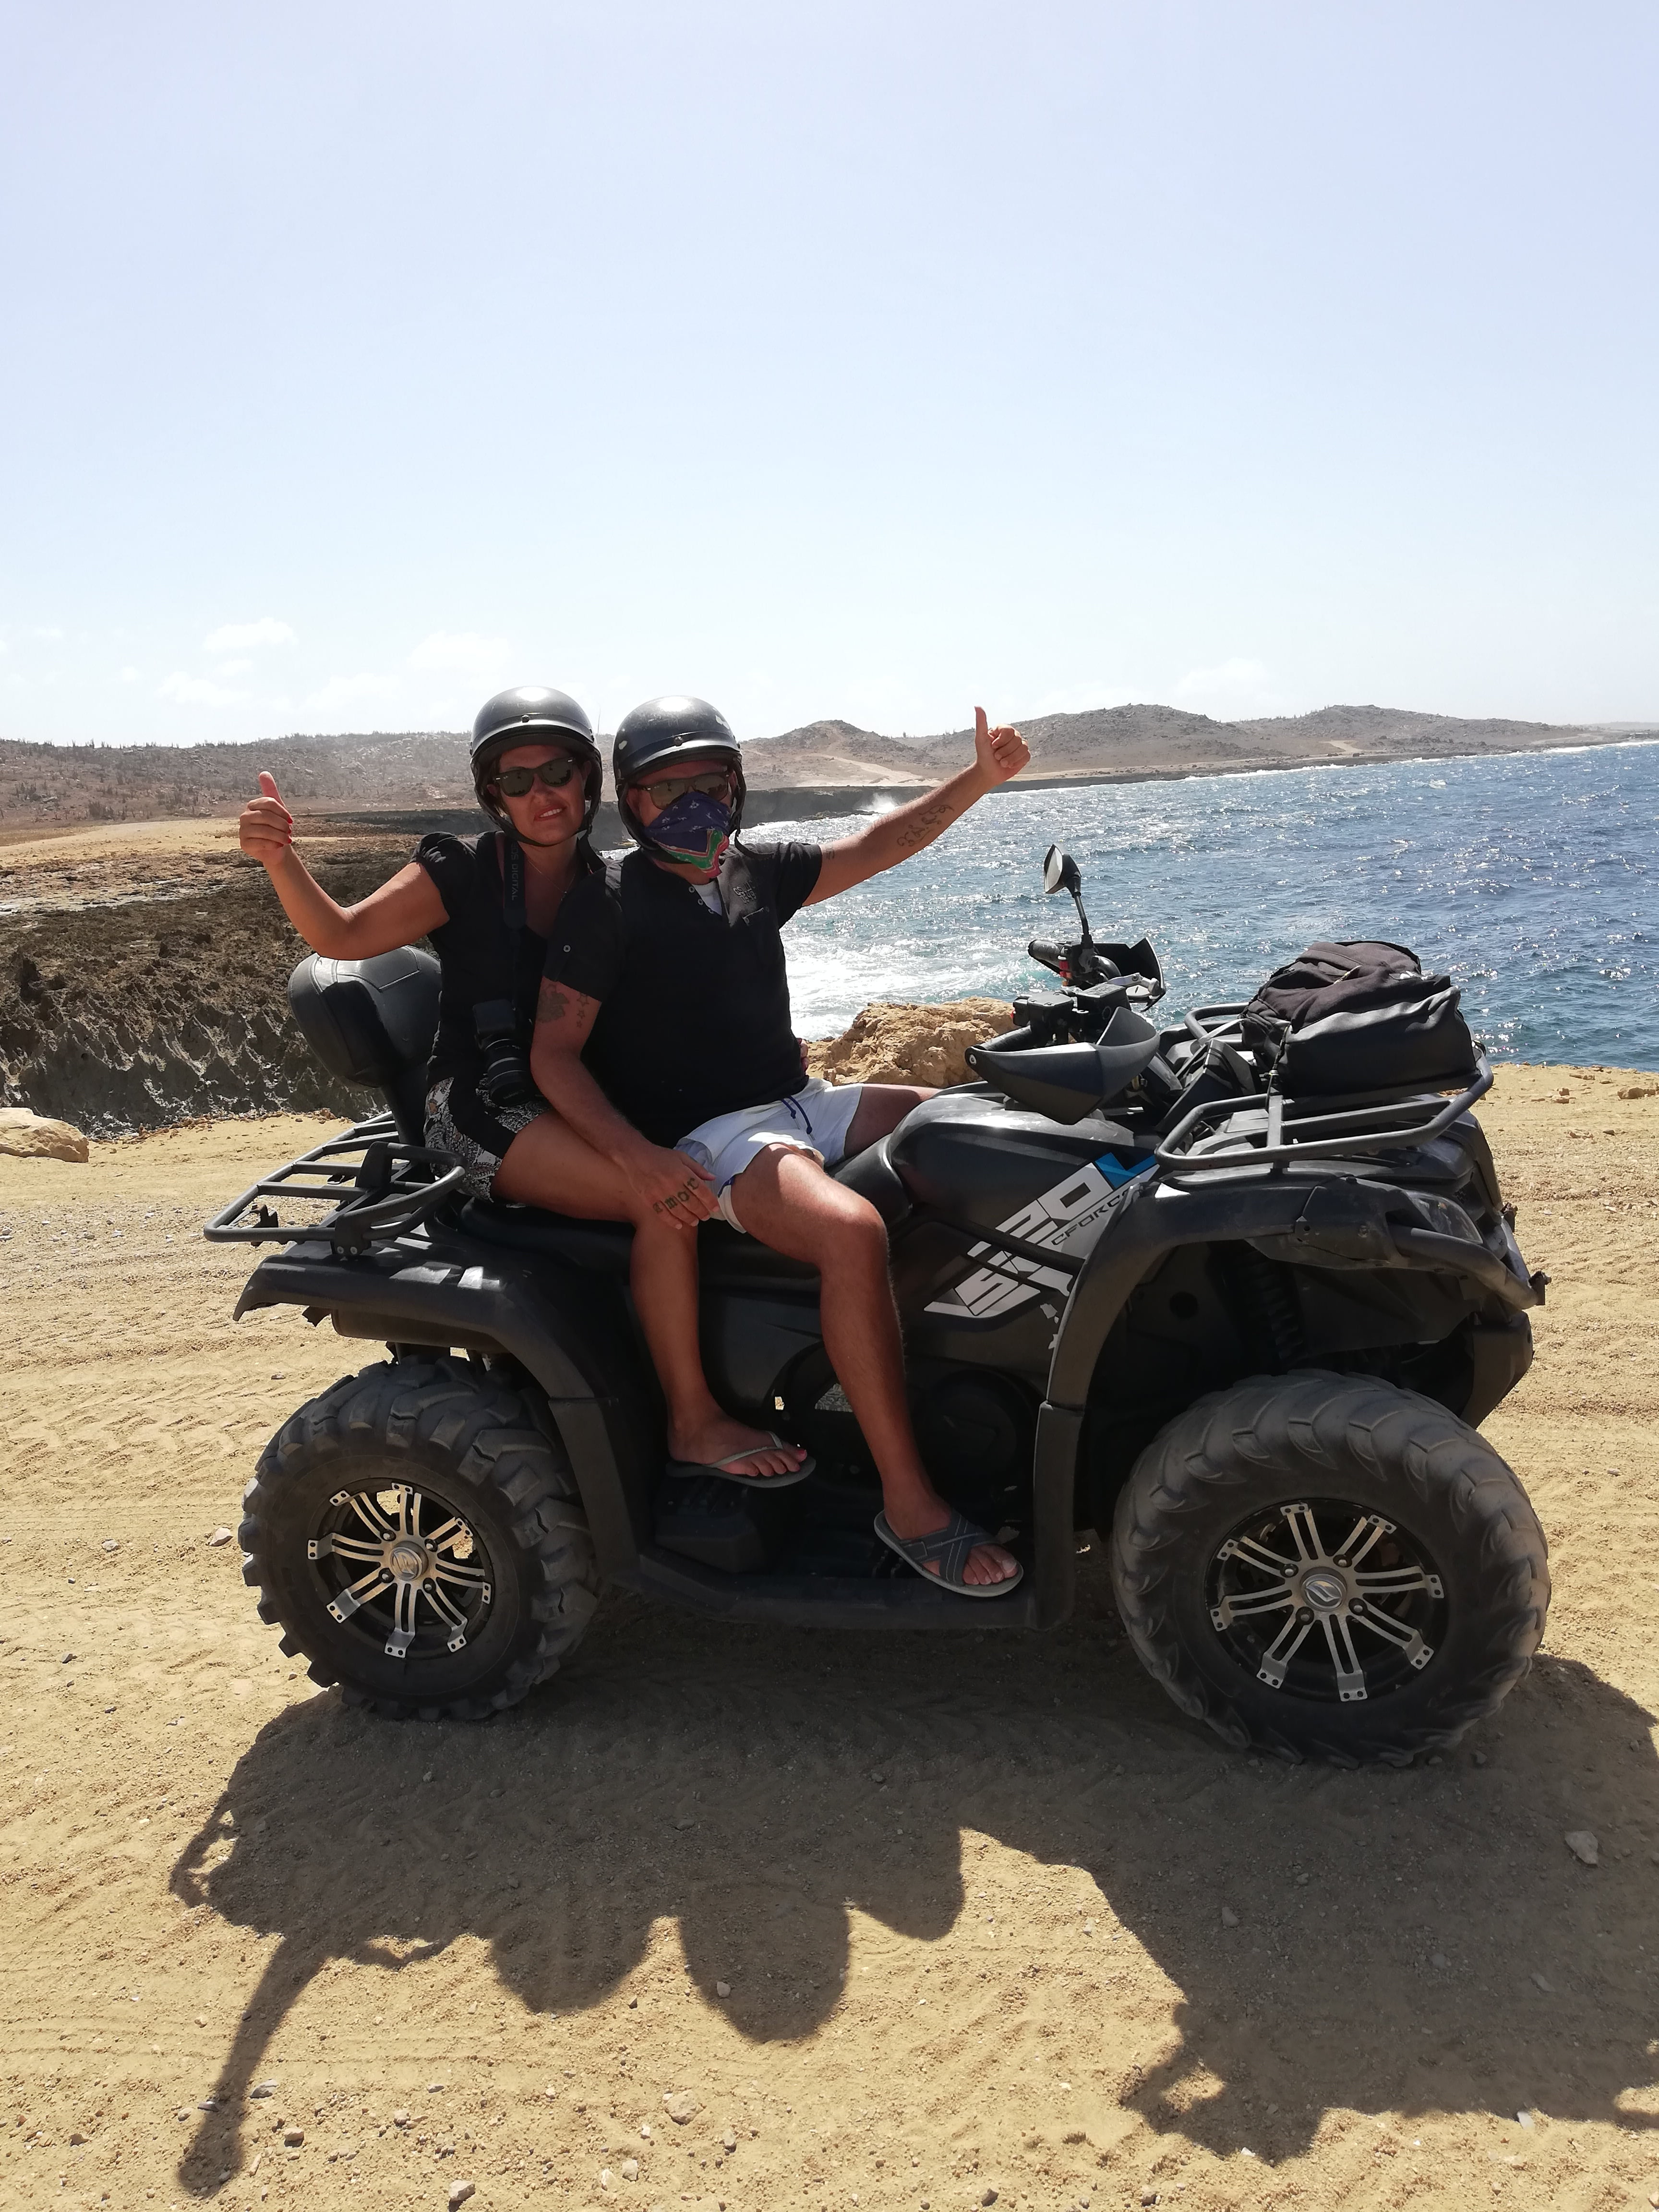 COSA FARE AD ARUBA: ACTION TOURS CON ATV (QUAD)